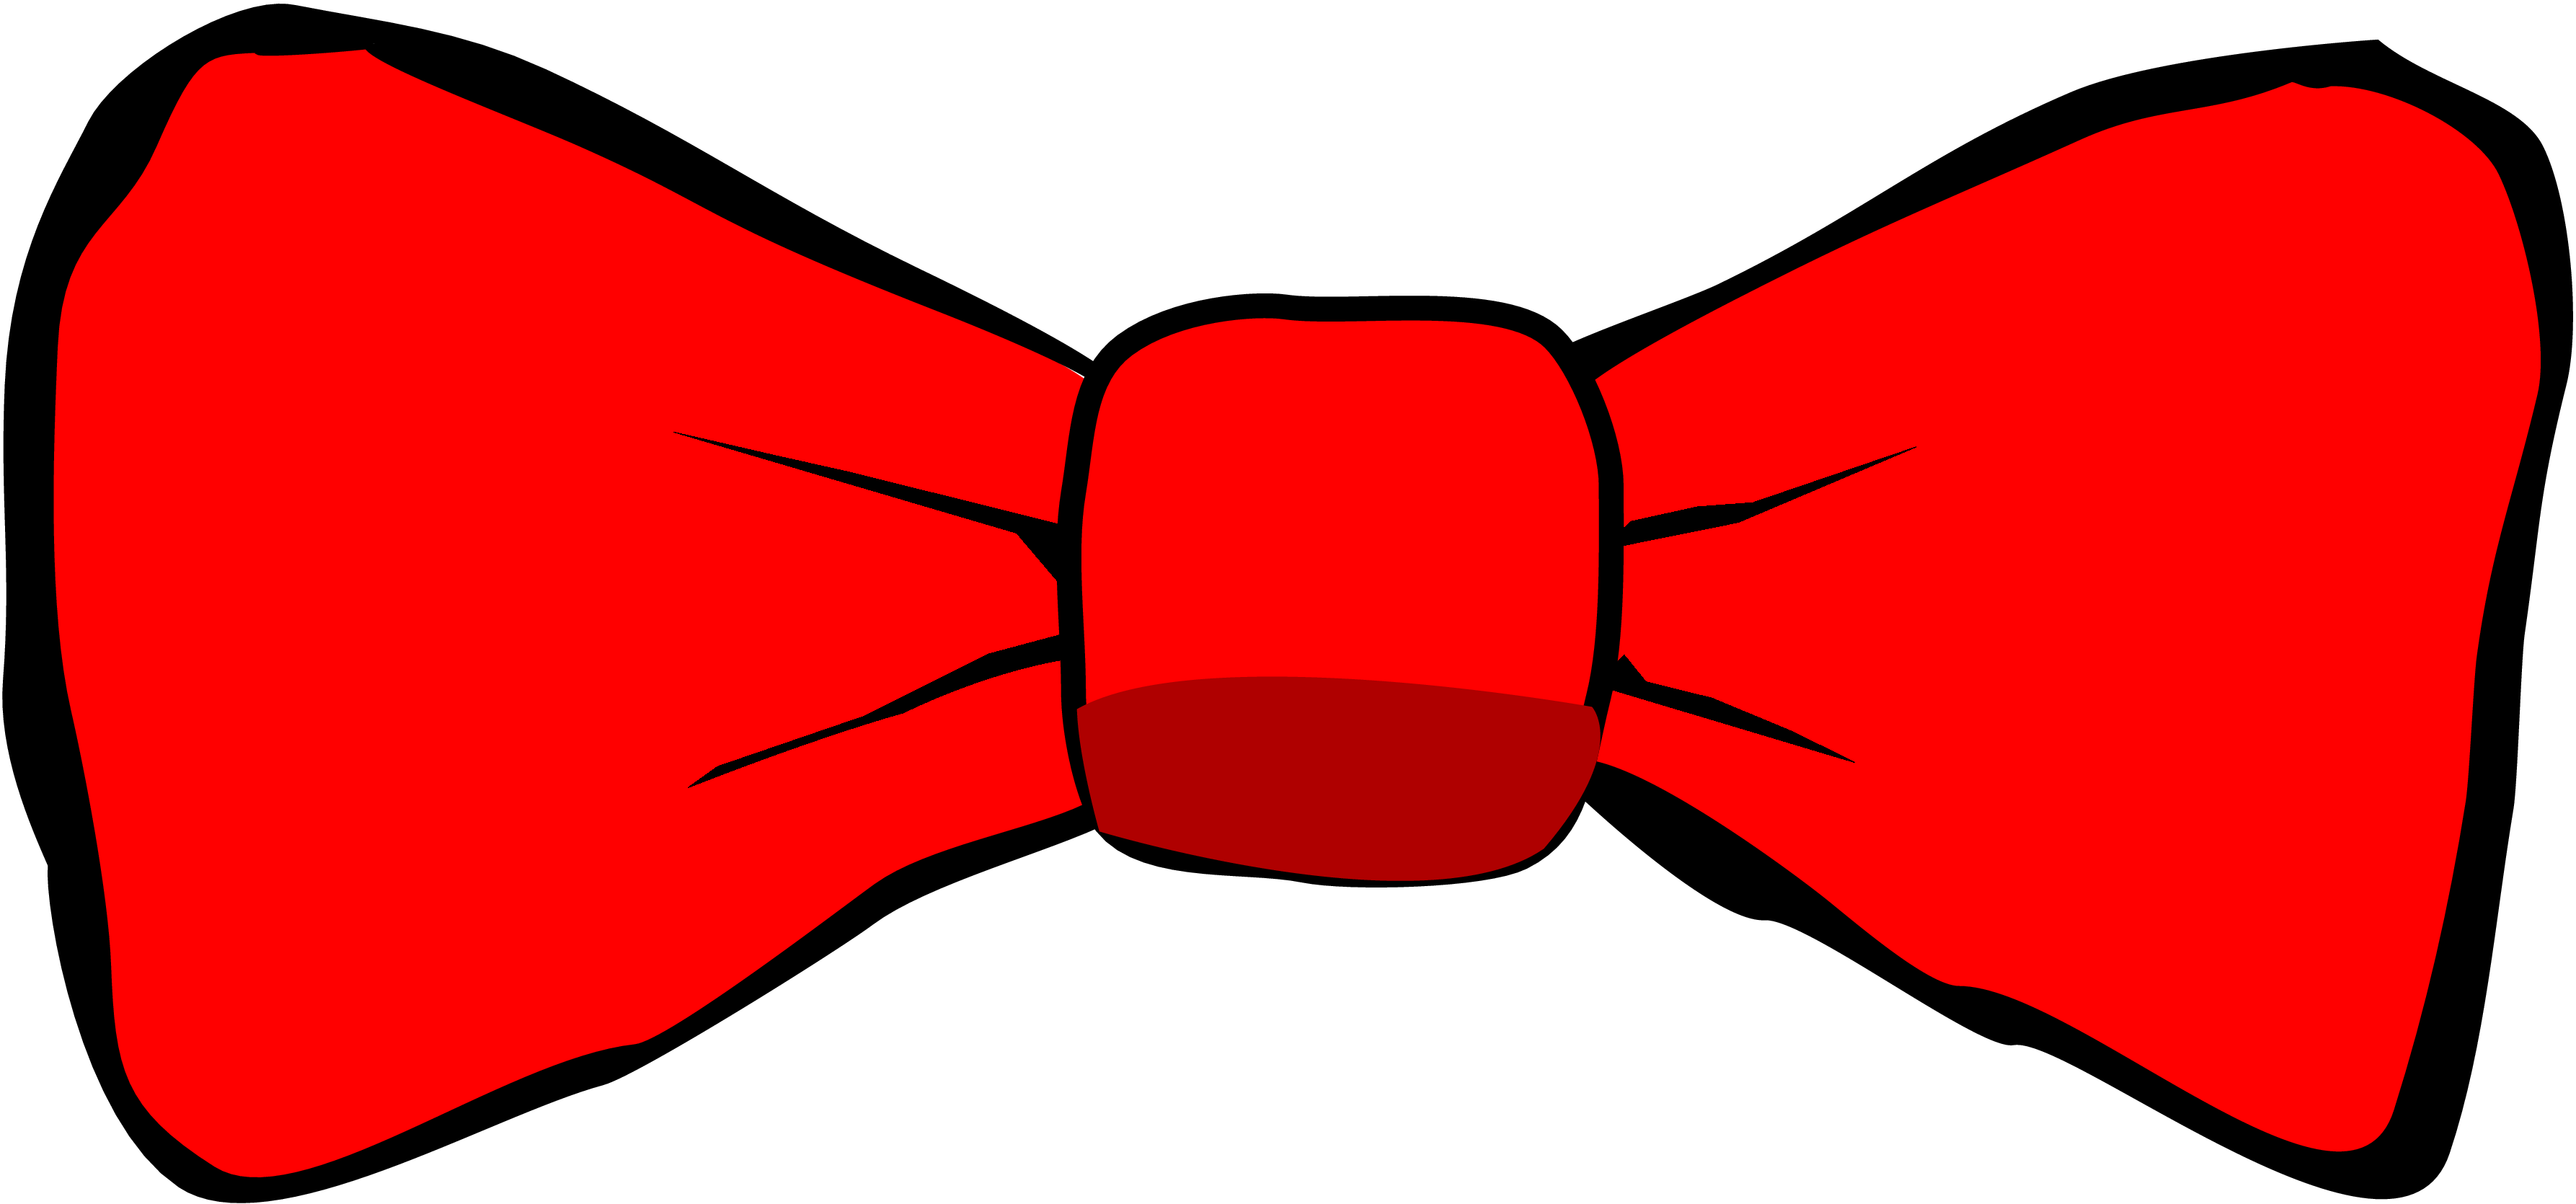 Cat in the hat outline clipart jpg transparent stock Cat In The Hat Bow Tie Template (16+) Cat In The Hat Bow Tie ... jpg transparent stock